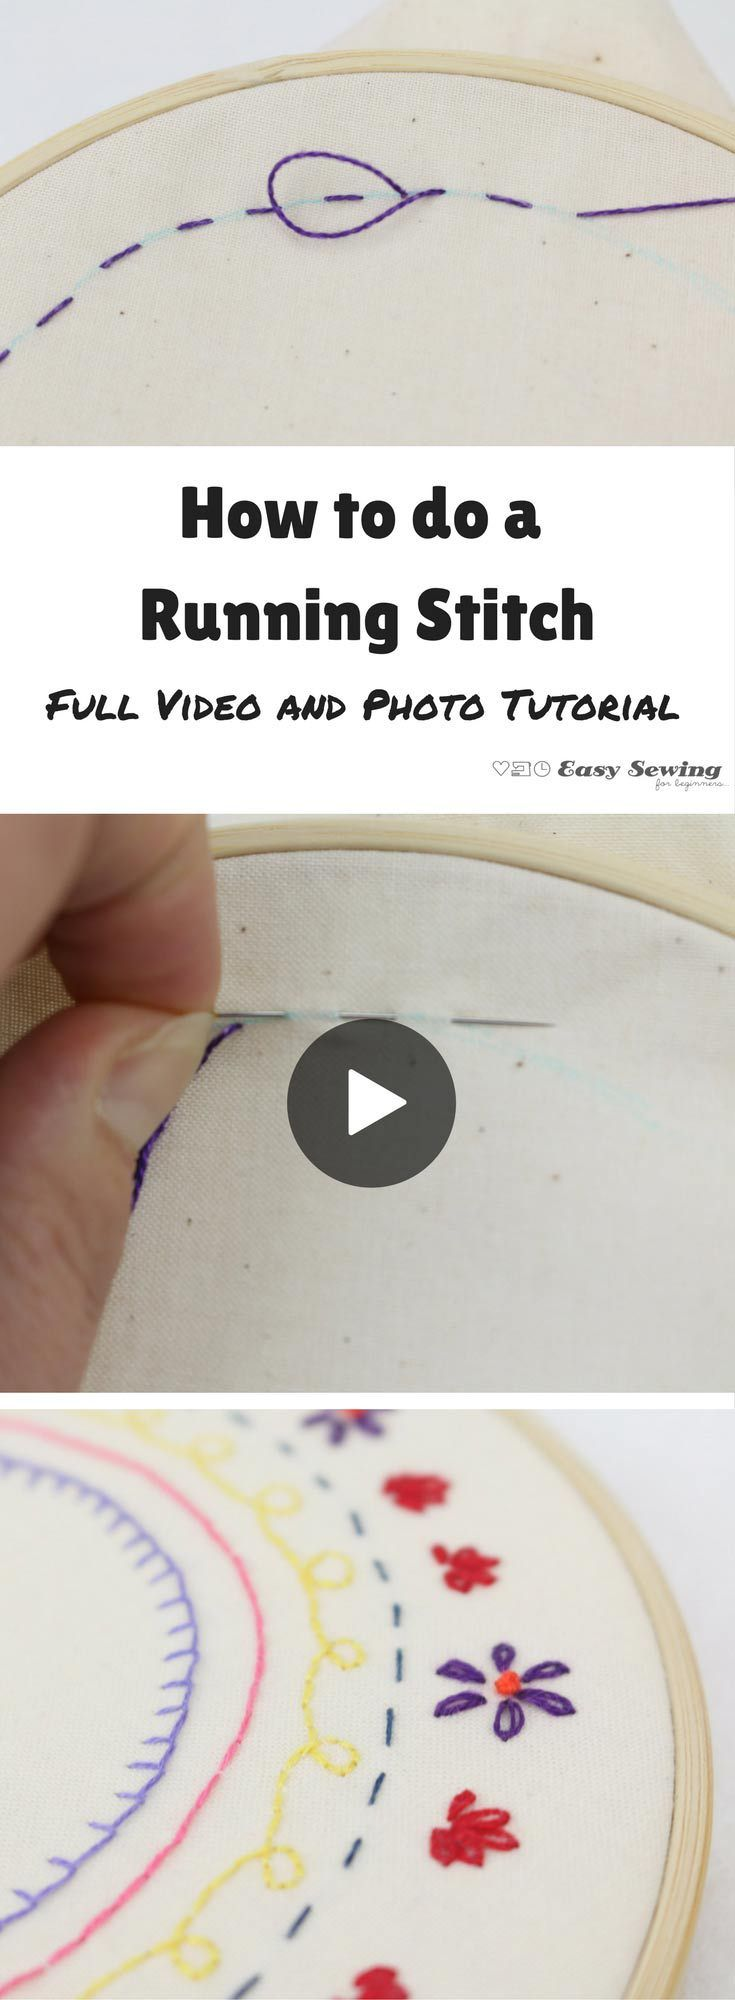 How to do a running stitch for hand embroidery video tutorial. Great for beginners!